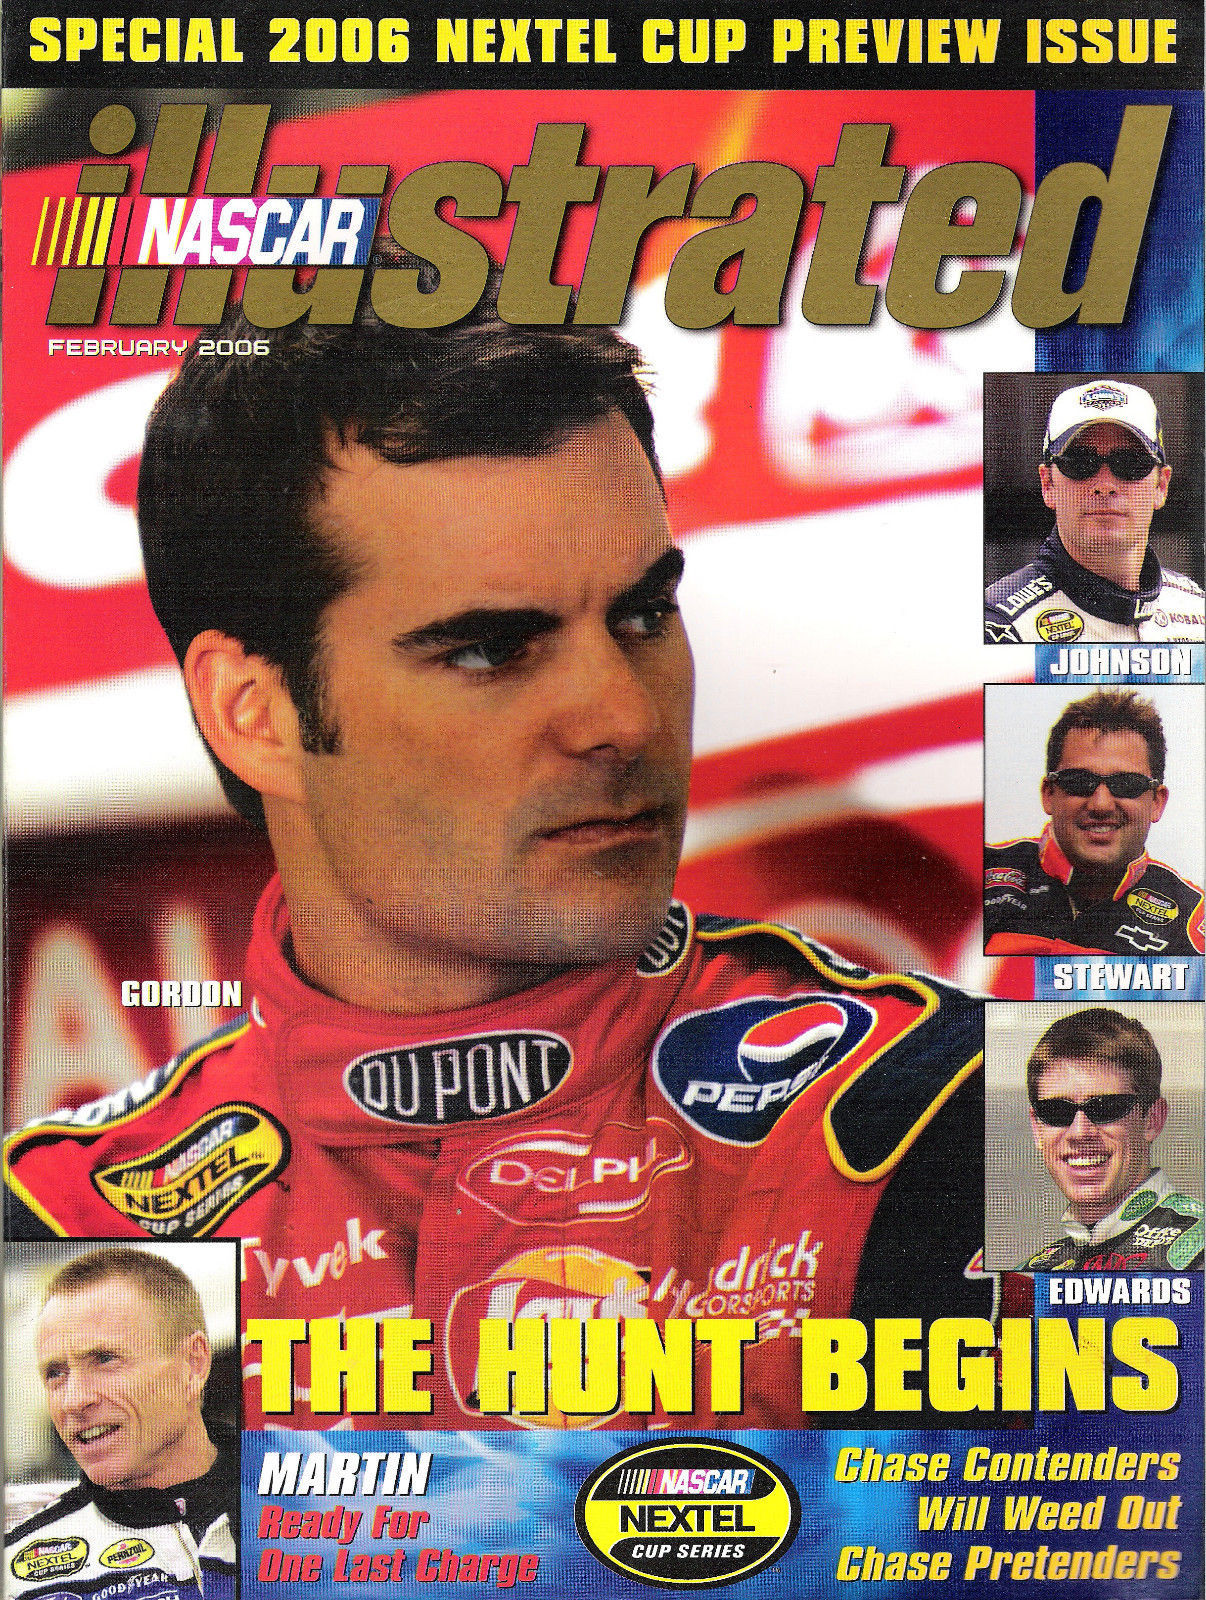 Jeff Gordon Feb 06 Nascar Illustrated Preview Issue The Hunt Begins